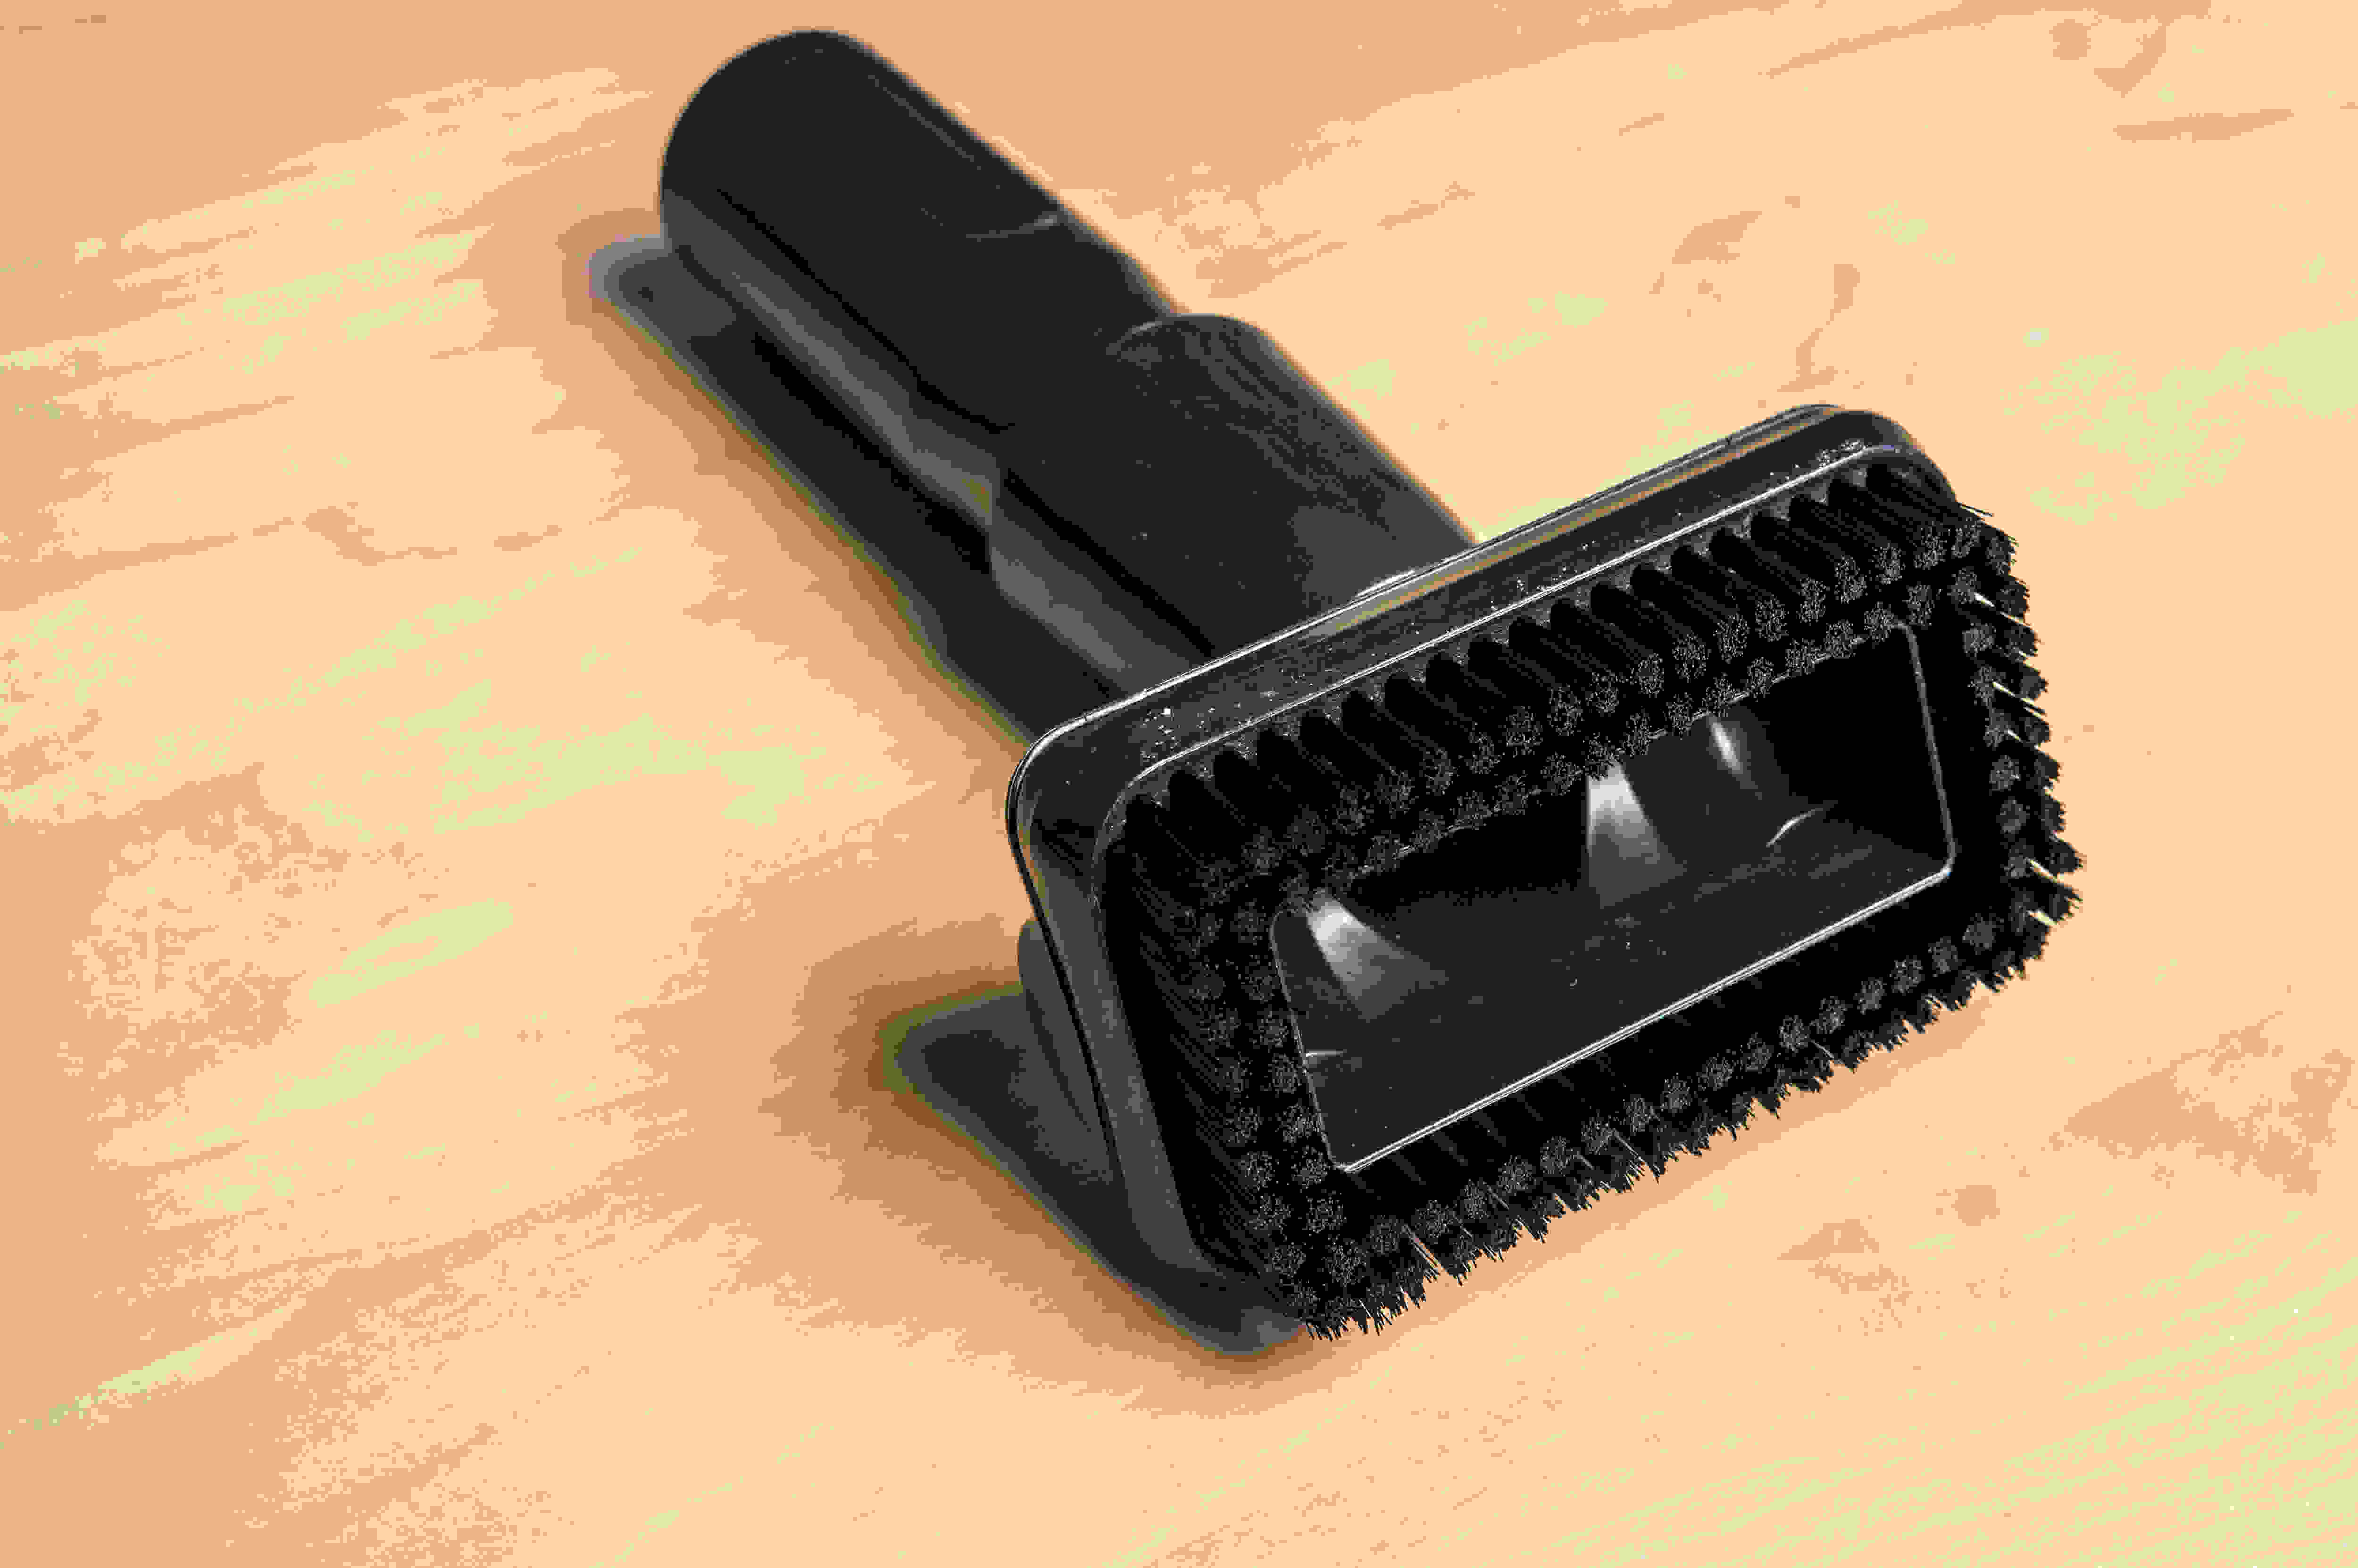 Thick bristles helps this brush pick up more dust.